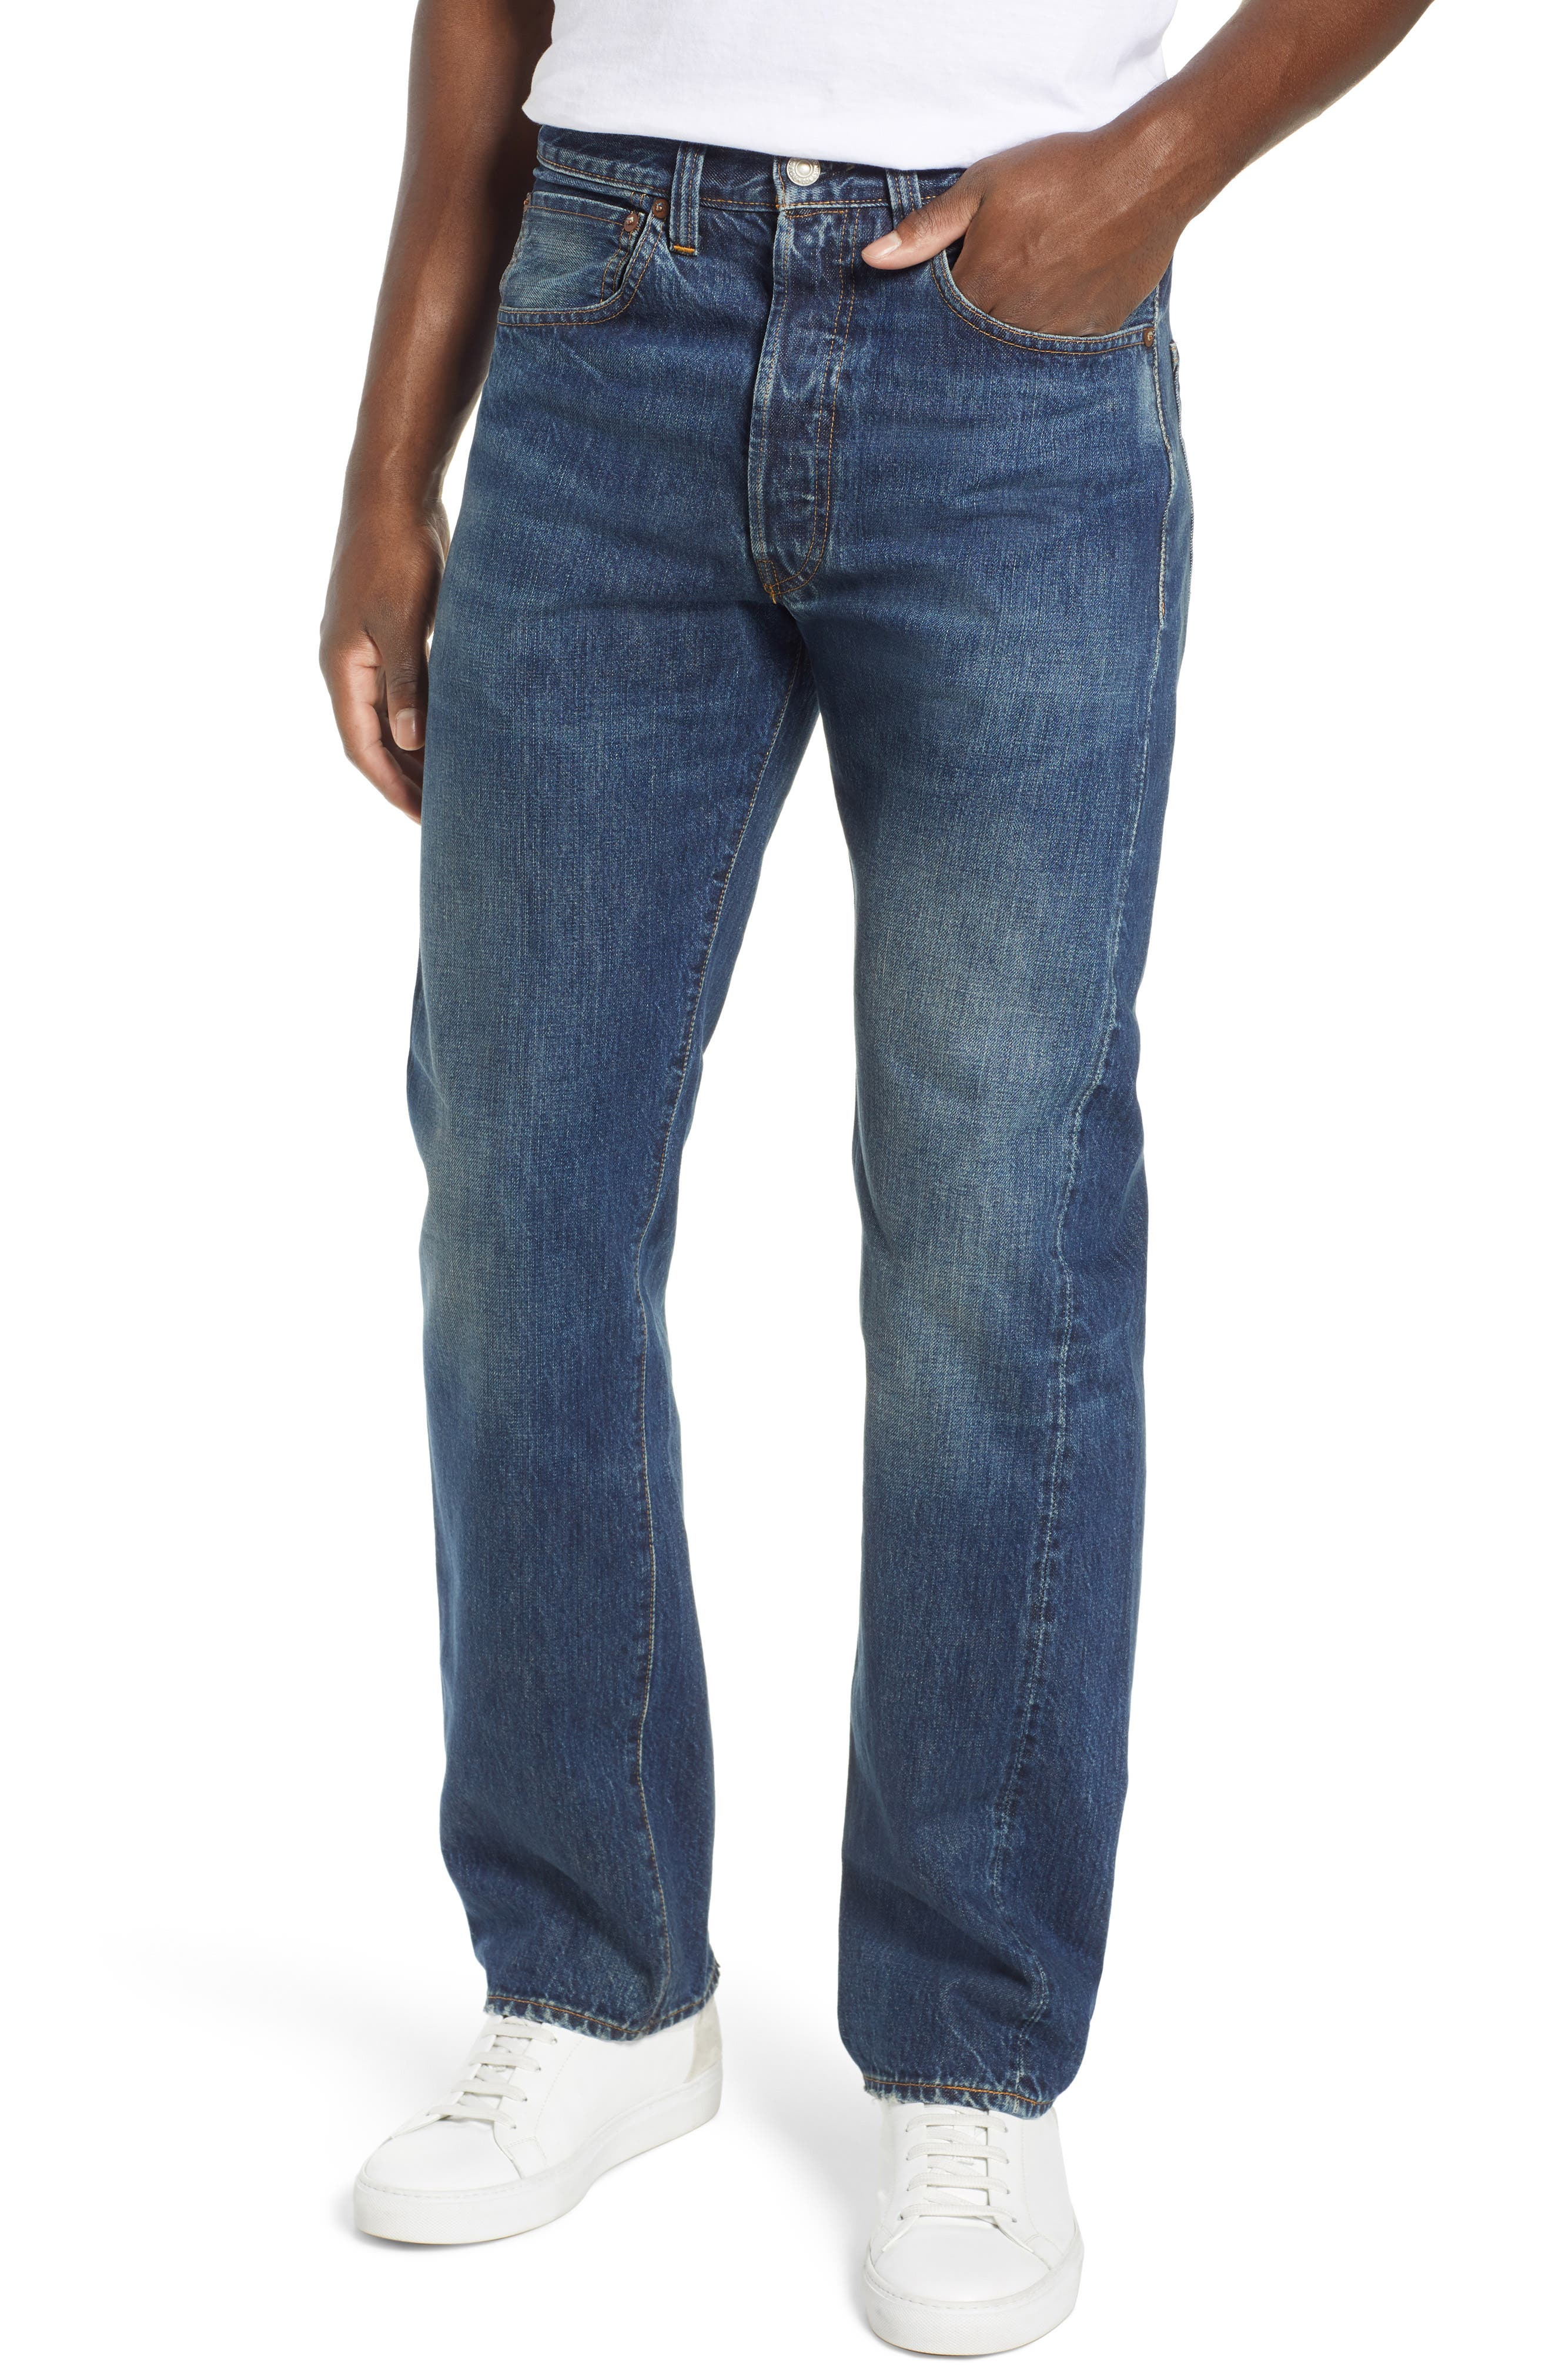 LEVI'S<SUP>®</SUP> VINTAGE CLOTHING 1947 501<sup>®</sup> Straight Leg Jeans, Main, color, 402